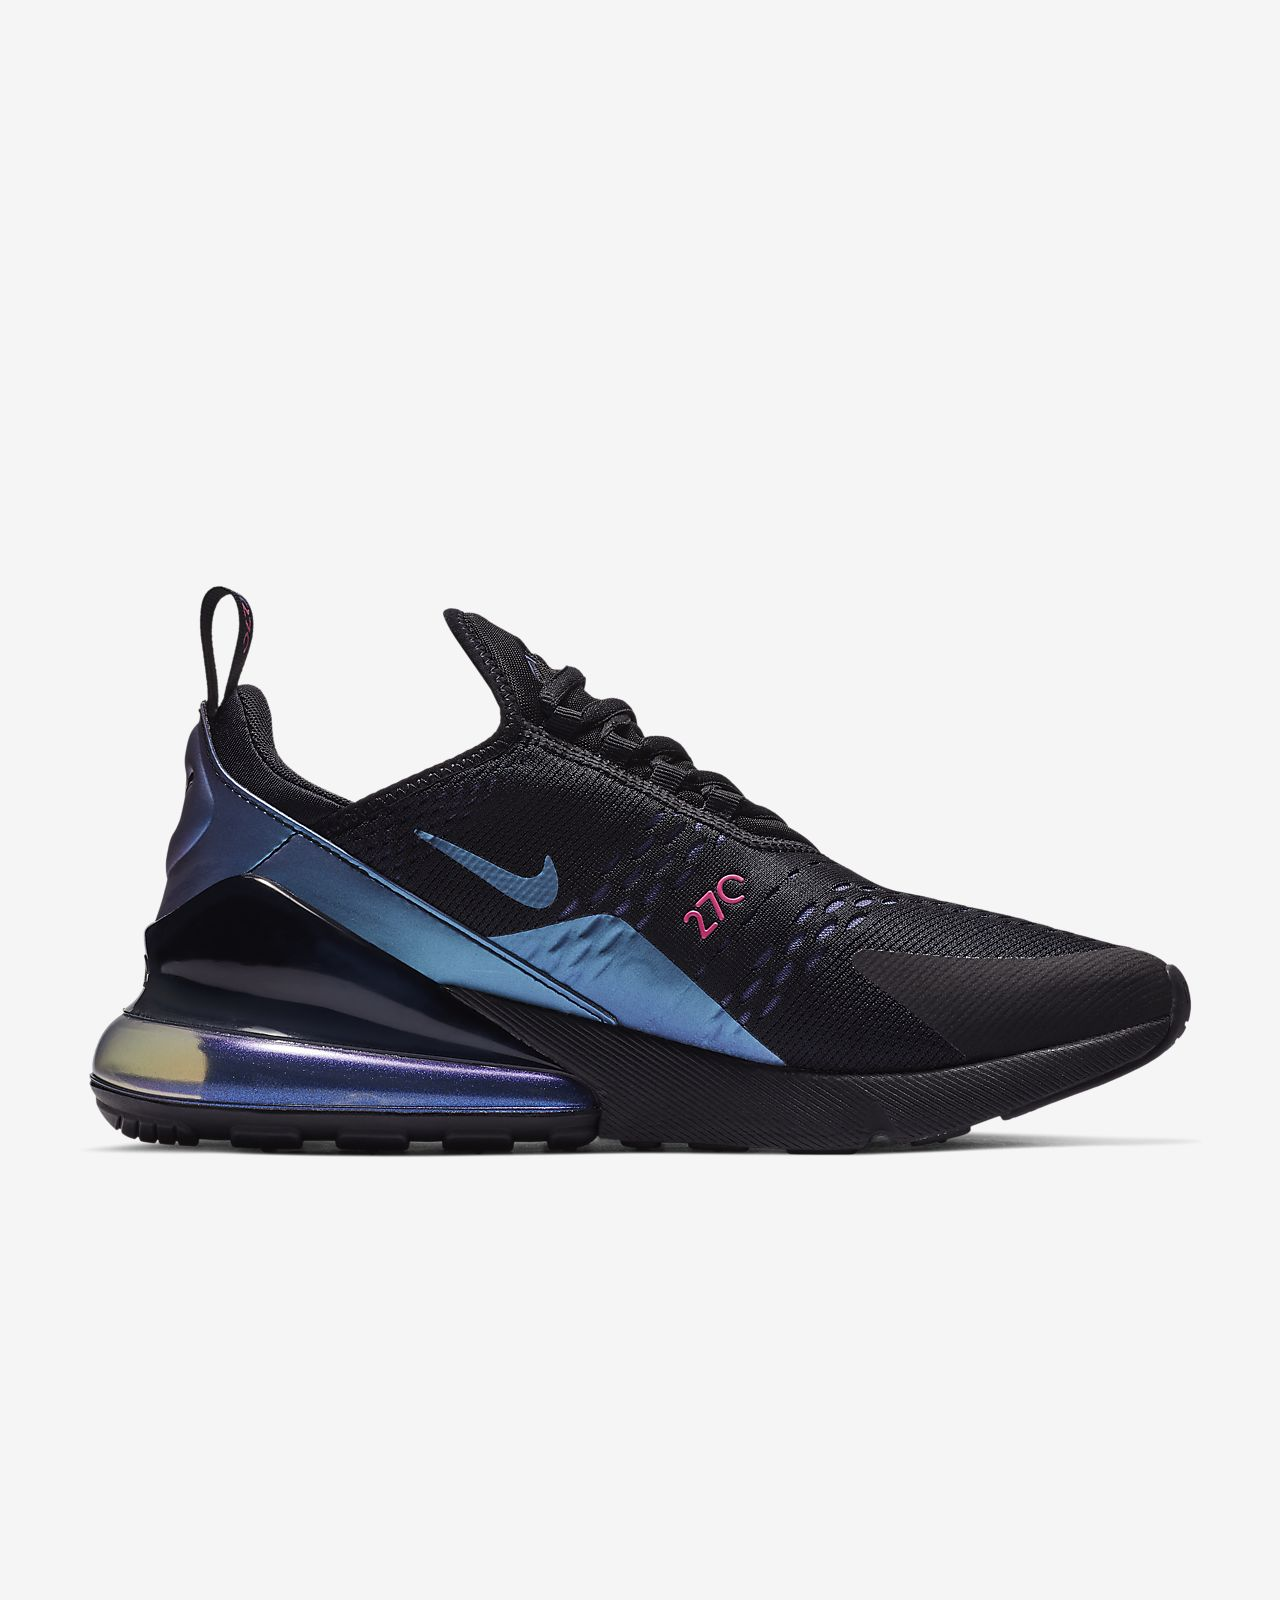 reputable site 7e107 7112b ... Nike Air Max 270 Mens Shoe